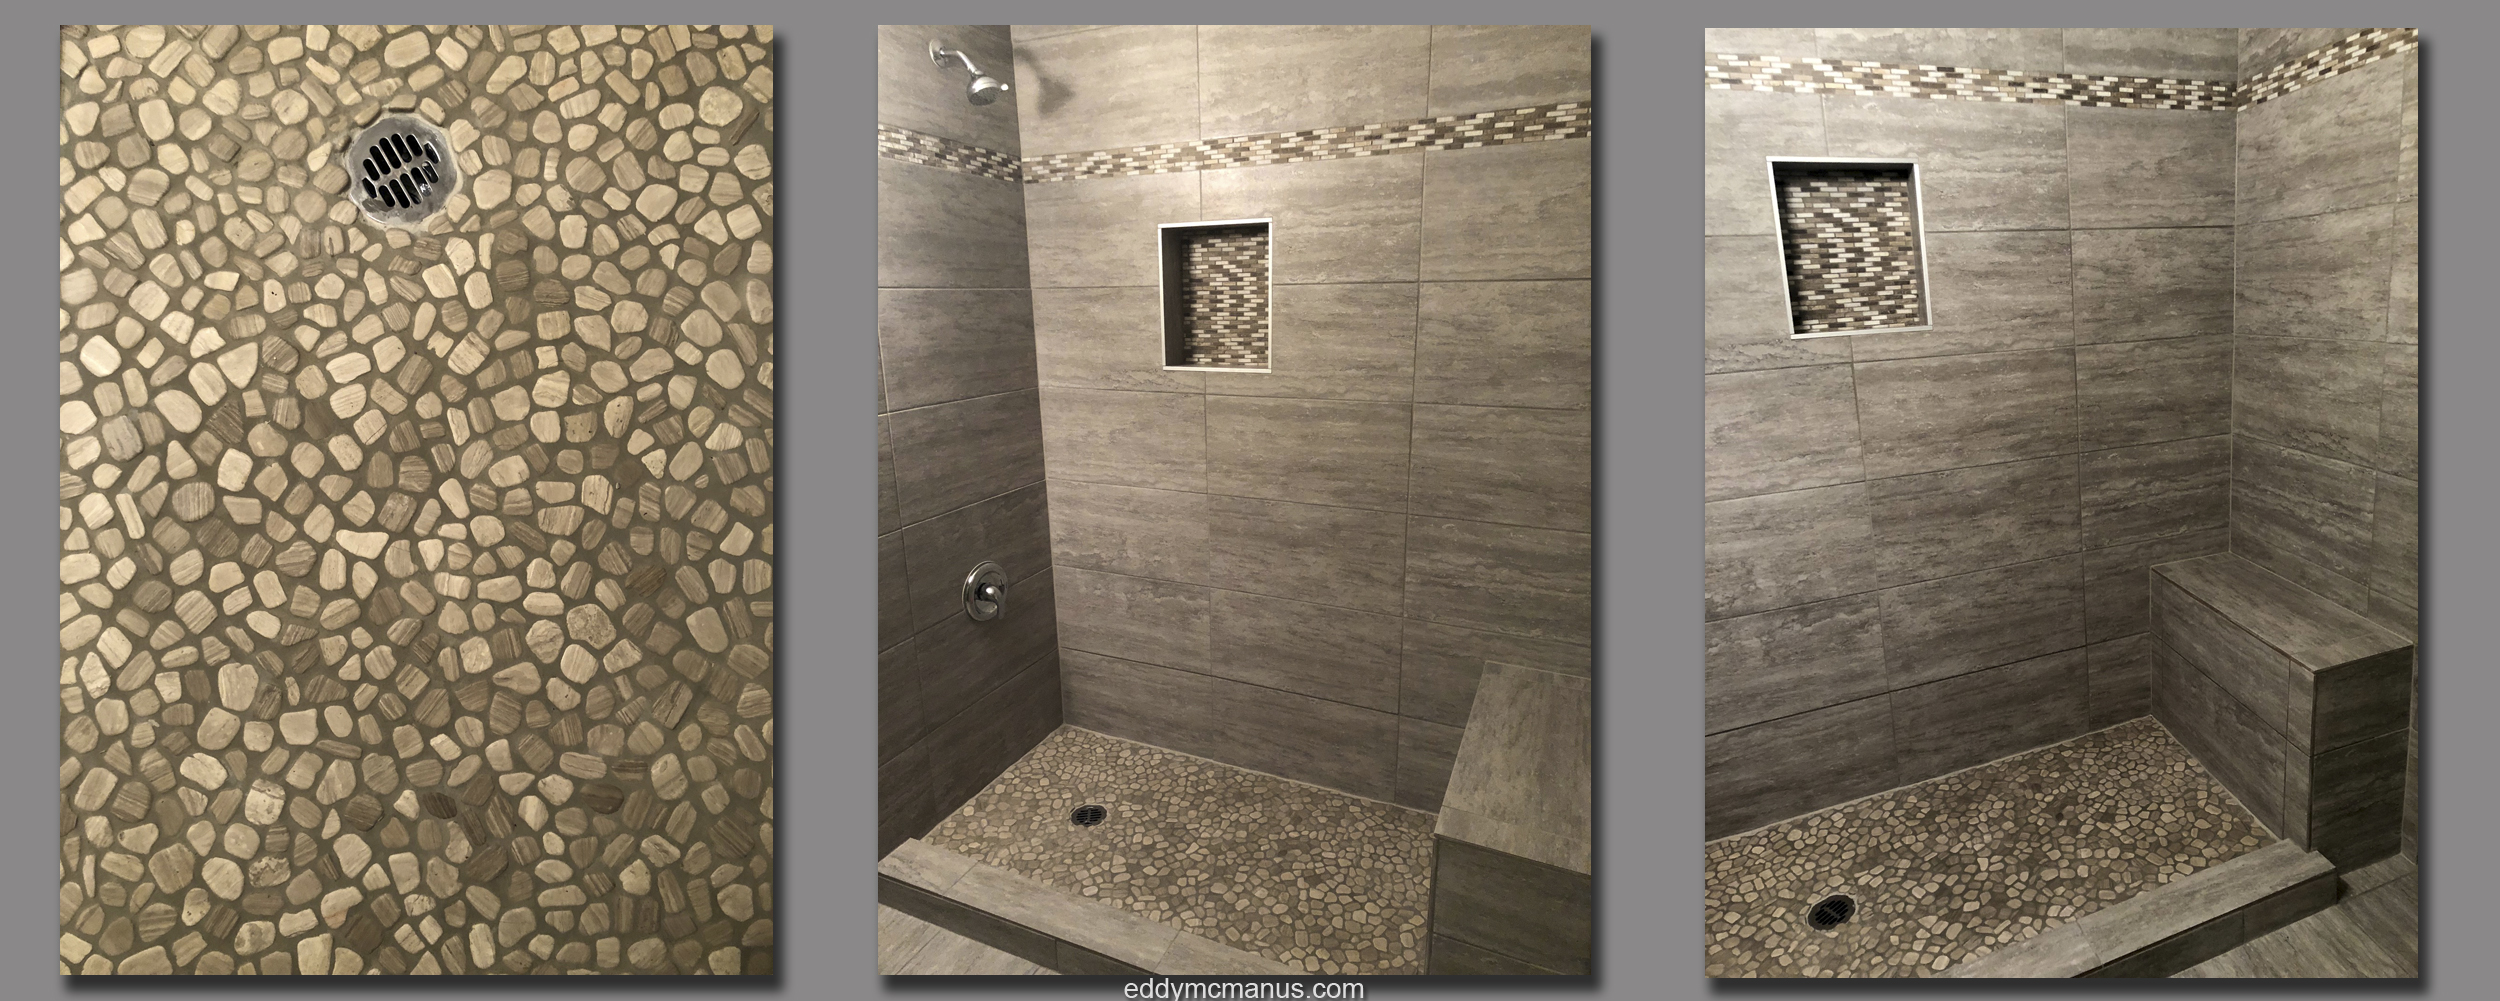 Finished After Construction - Images of Completed Tub Enclosure Remodel